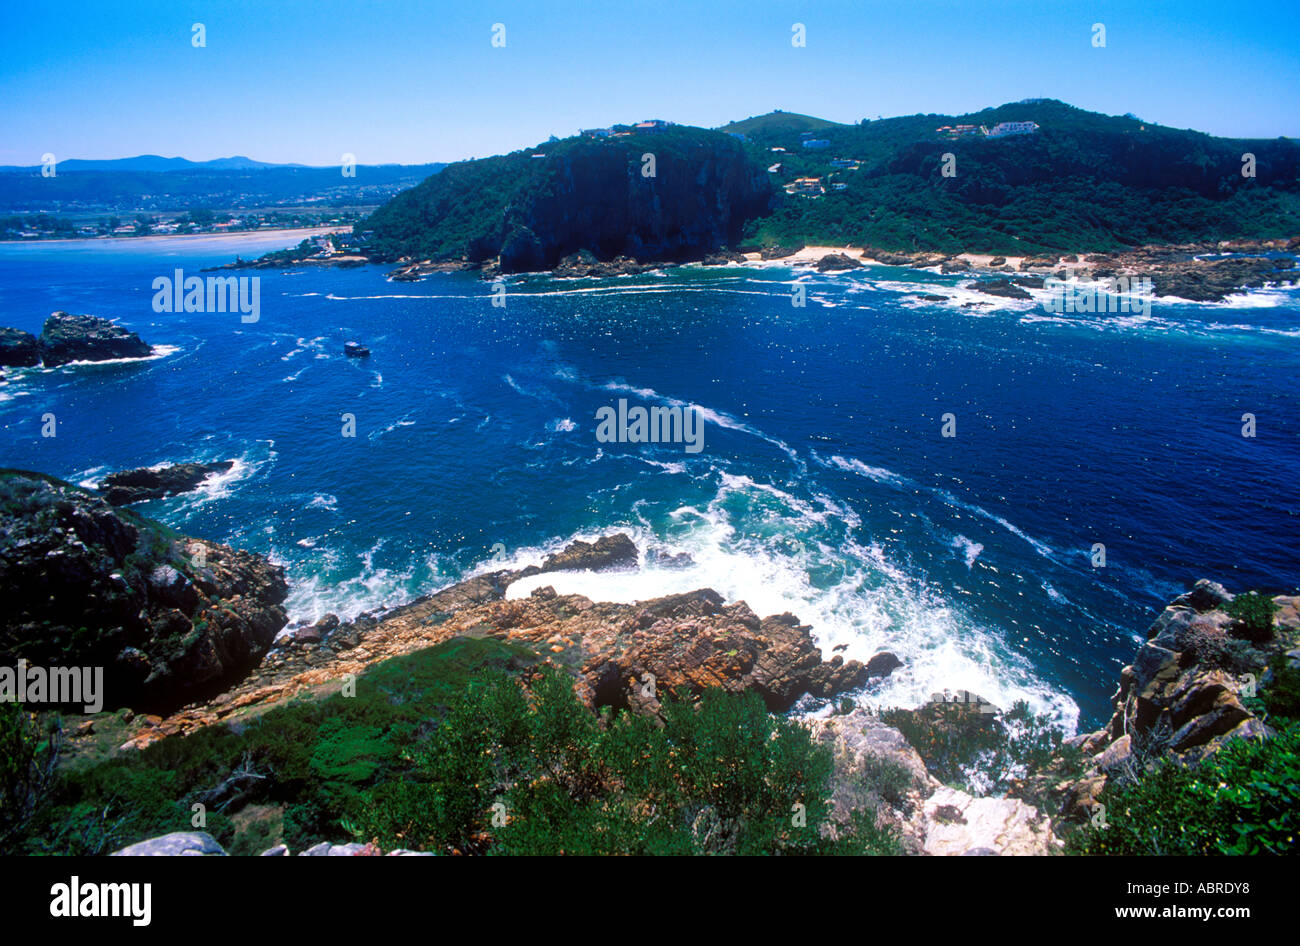 pacific atlantic ocean shot at knysna bay south africa. Black Bedroom Furniture Sets. Home Design Ideas